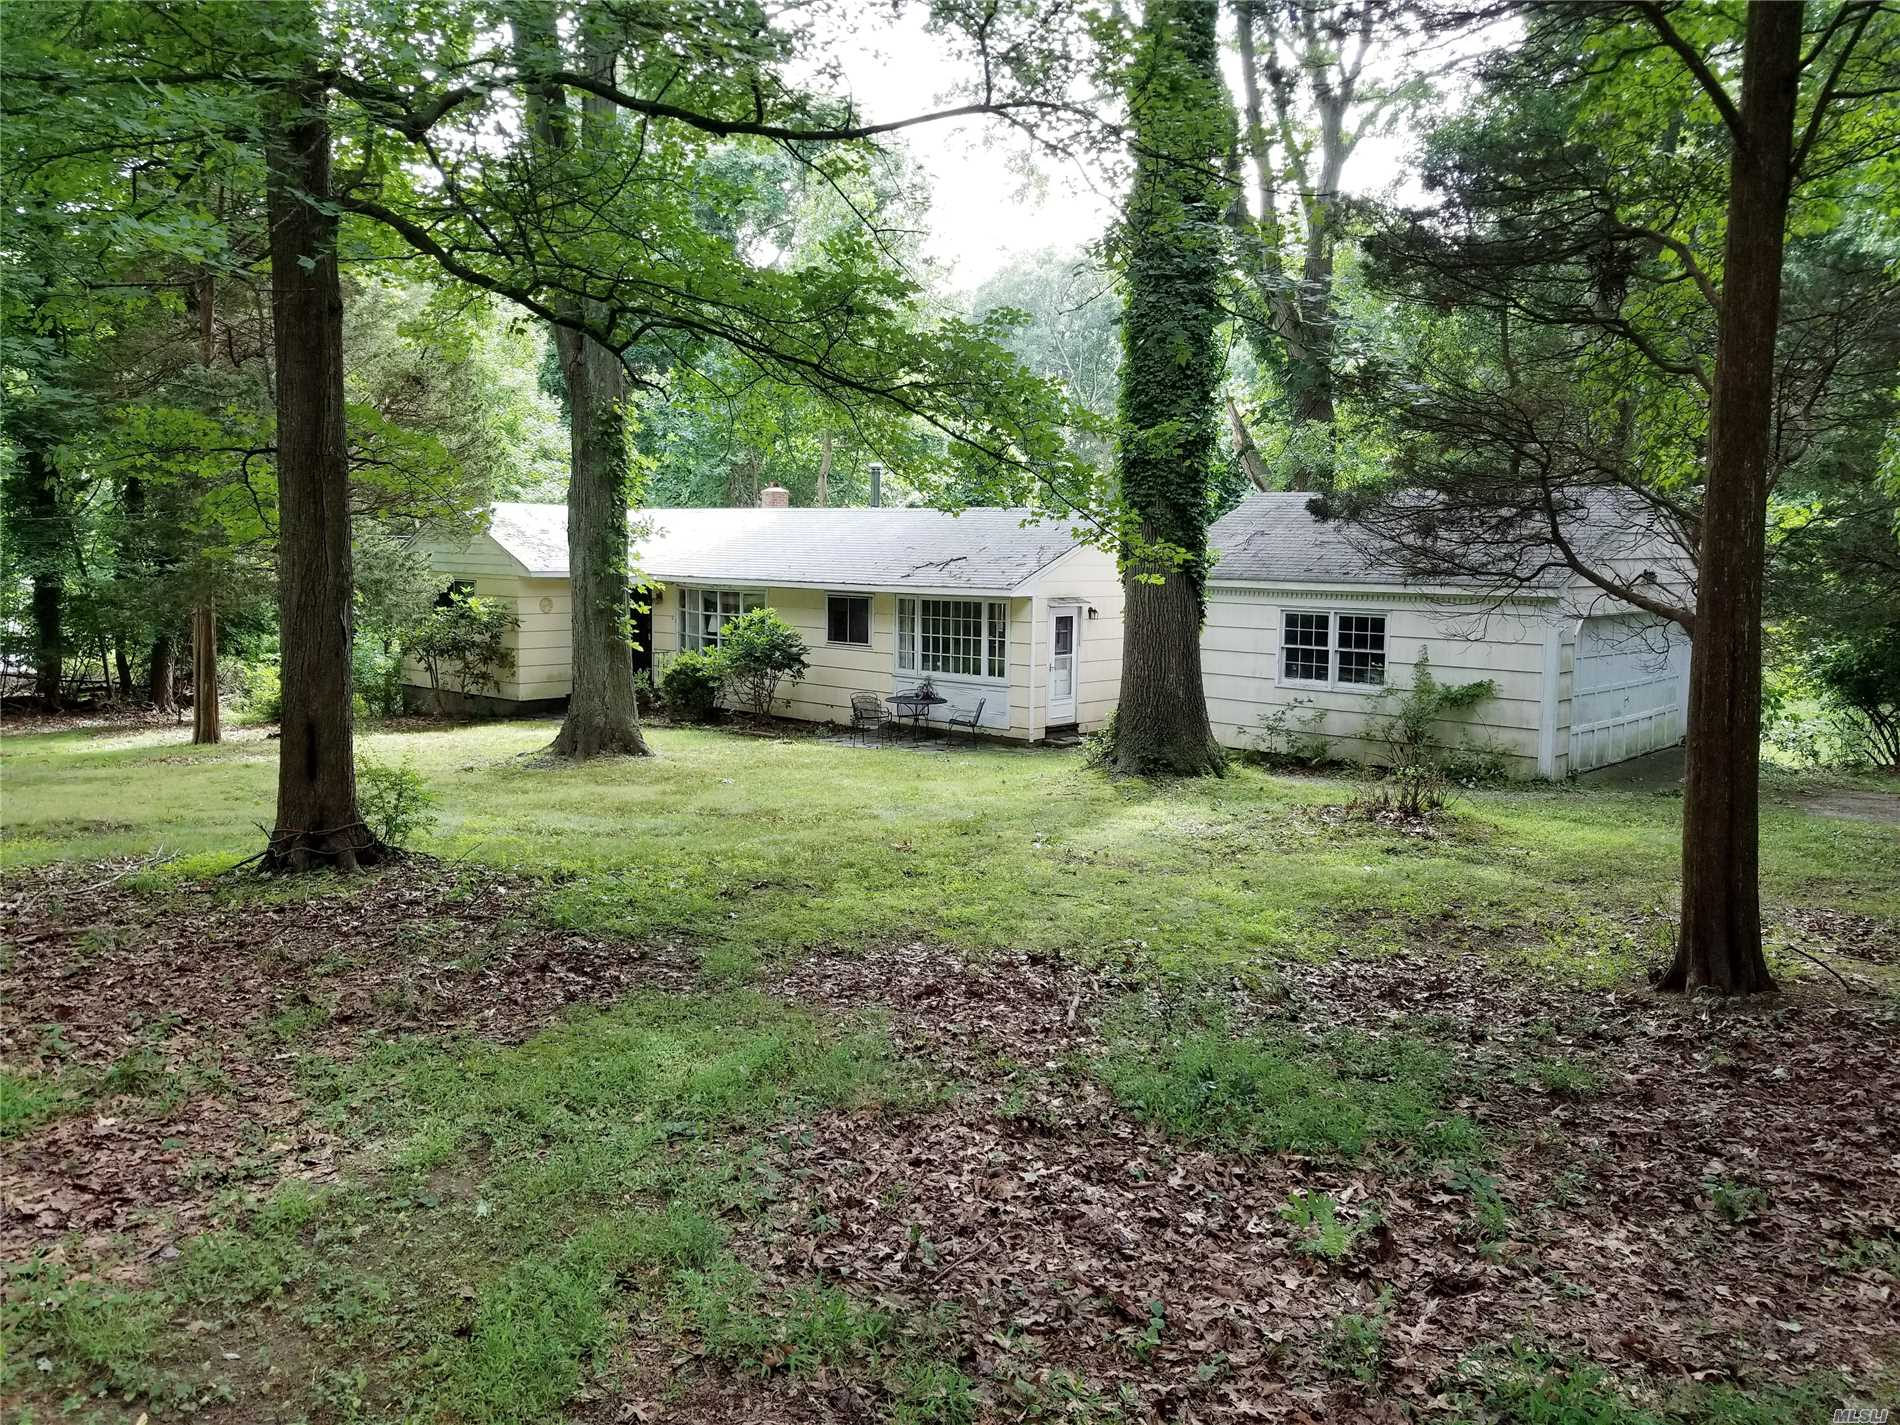 Great Opportunity For A Weekend Get Away Or To Create Your Dream House On 2 Plus Acres! Private Beach Association With Mooring. Private Wooded Setting, Detached 2 Car Garage.